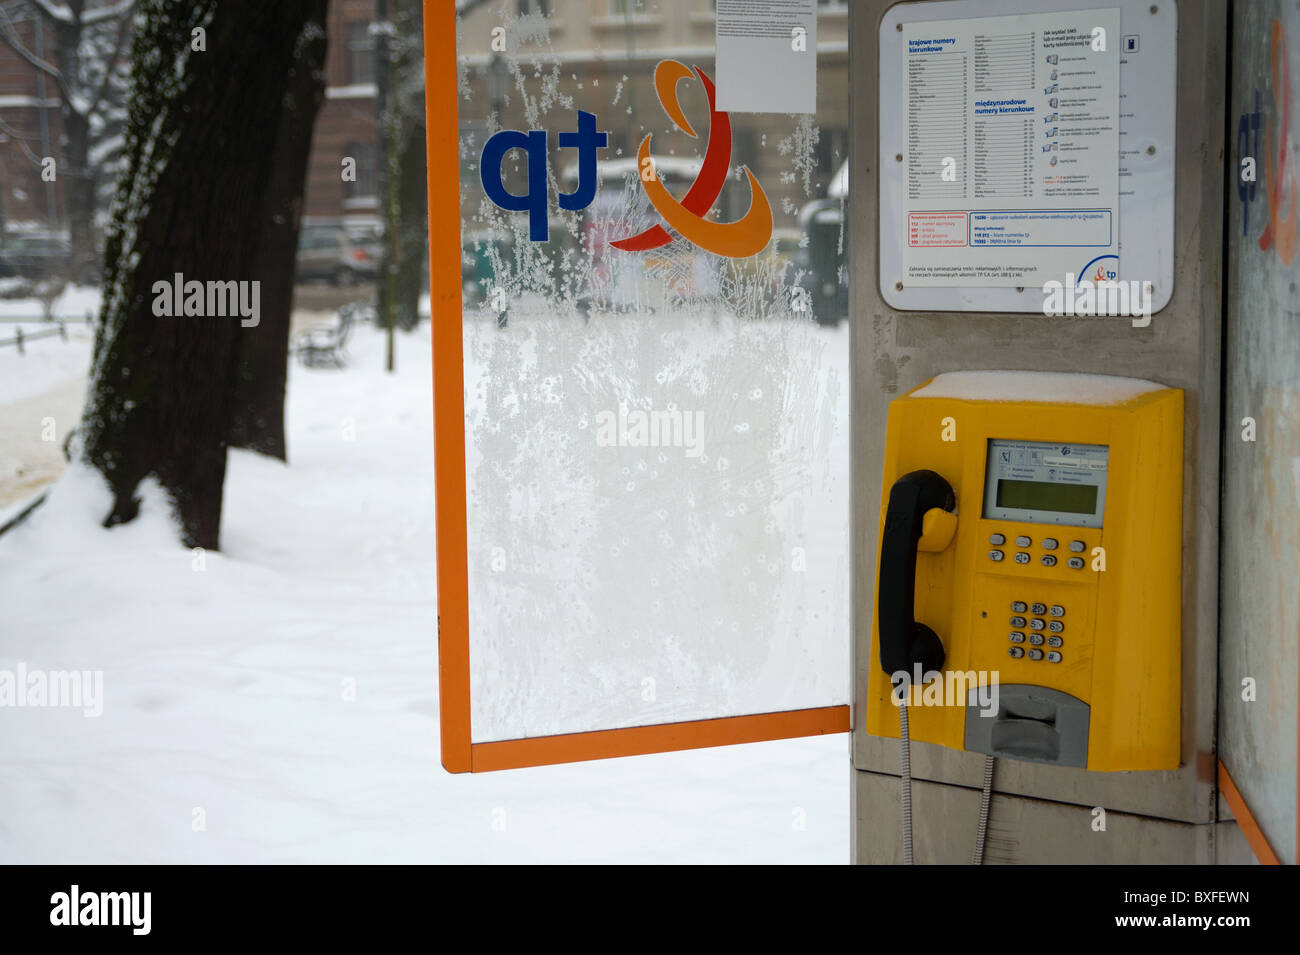 A bright colored yellow pay telephone kiosk seen contrasted against recent snow-fall in the Planty area of Krakow. - Stock Image